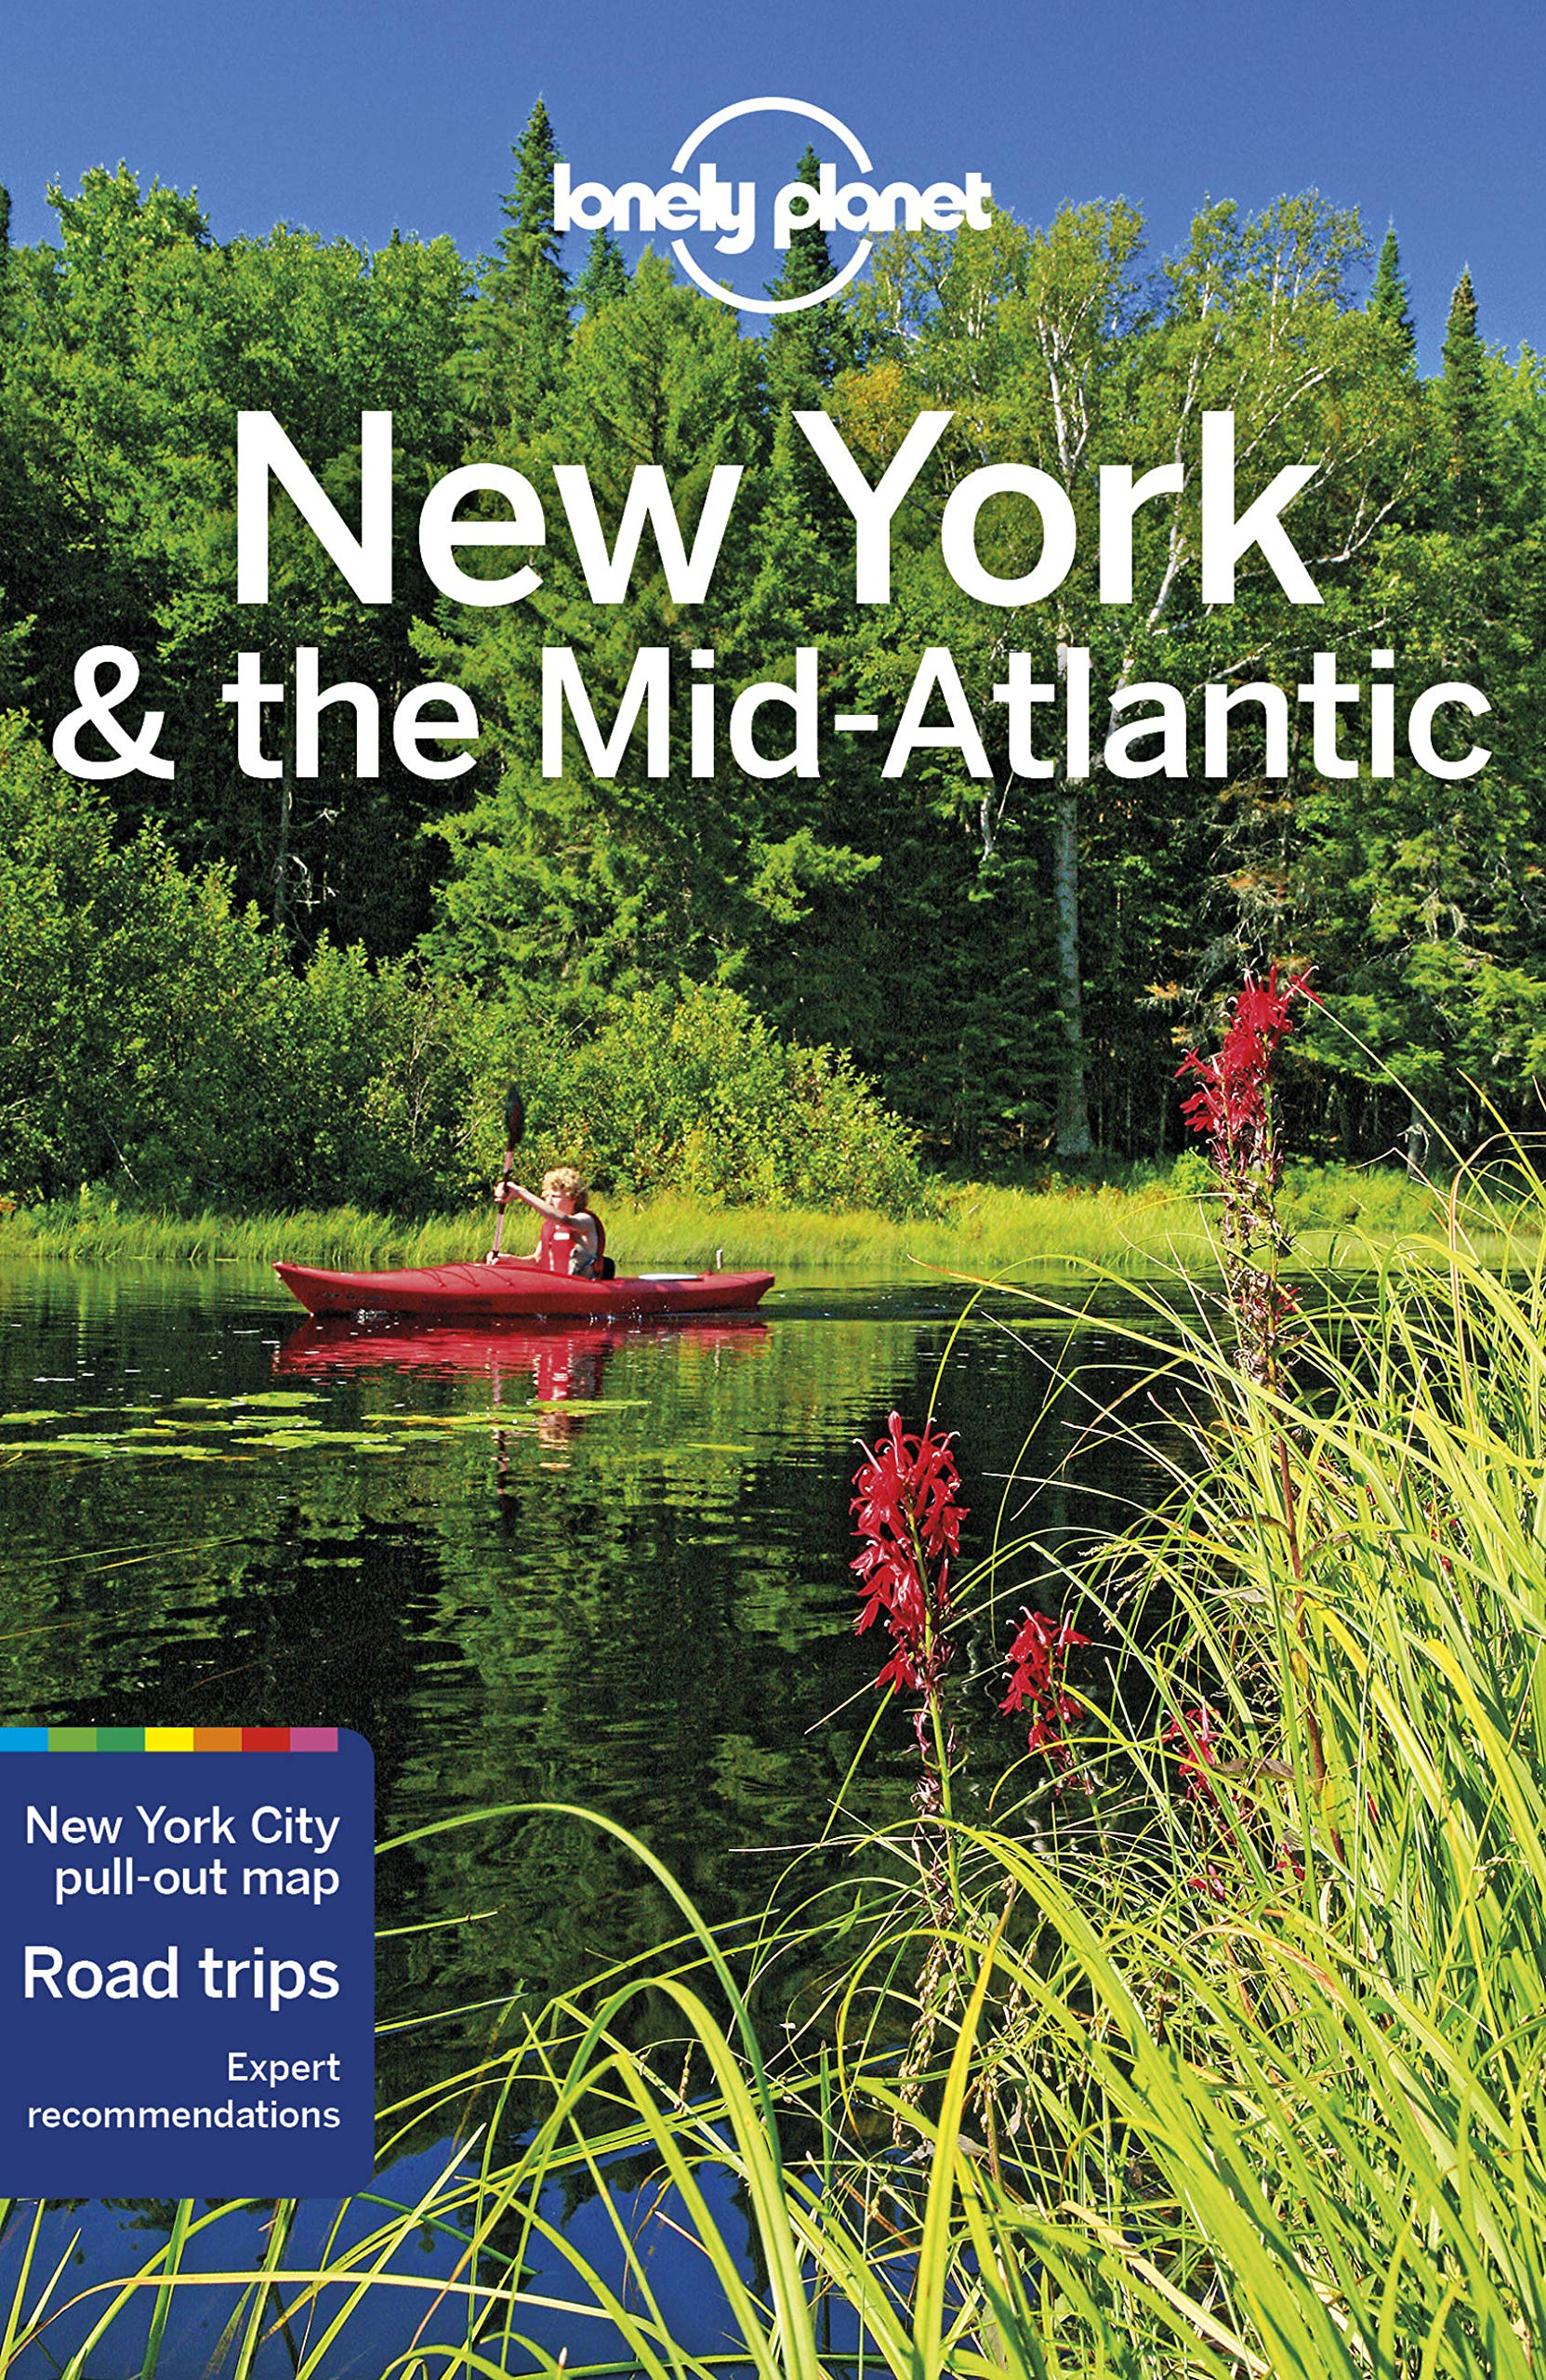 Lonely Planet New York & the Mid-Atlantic 1 (Regional Guide)